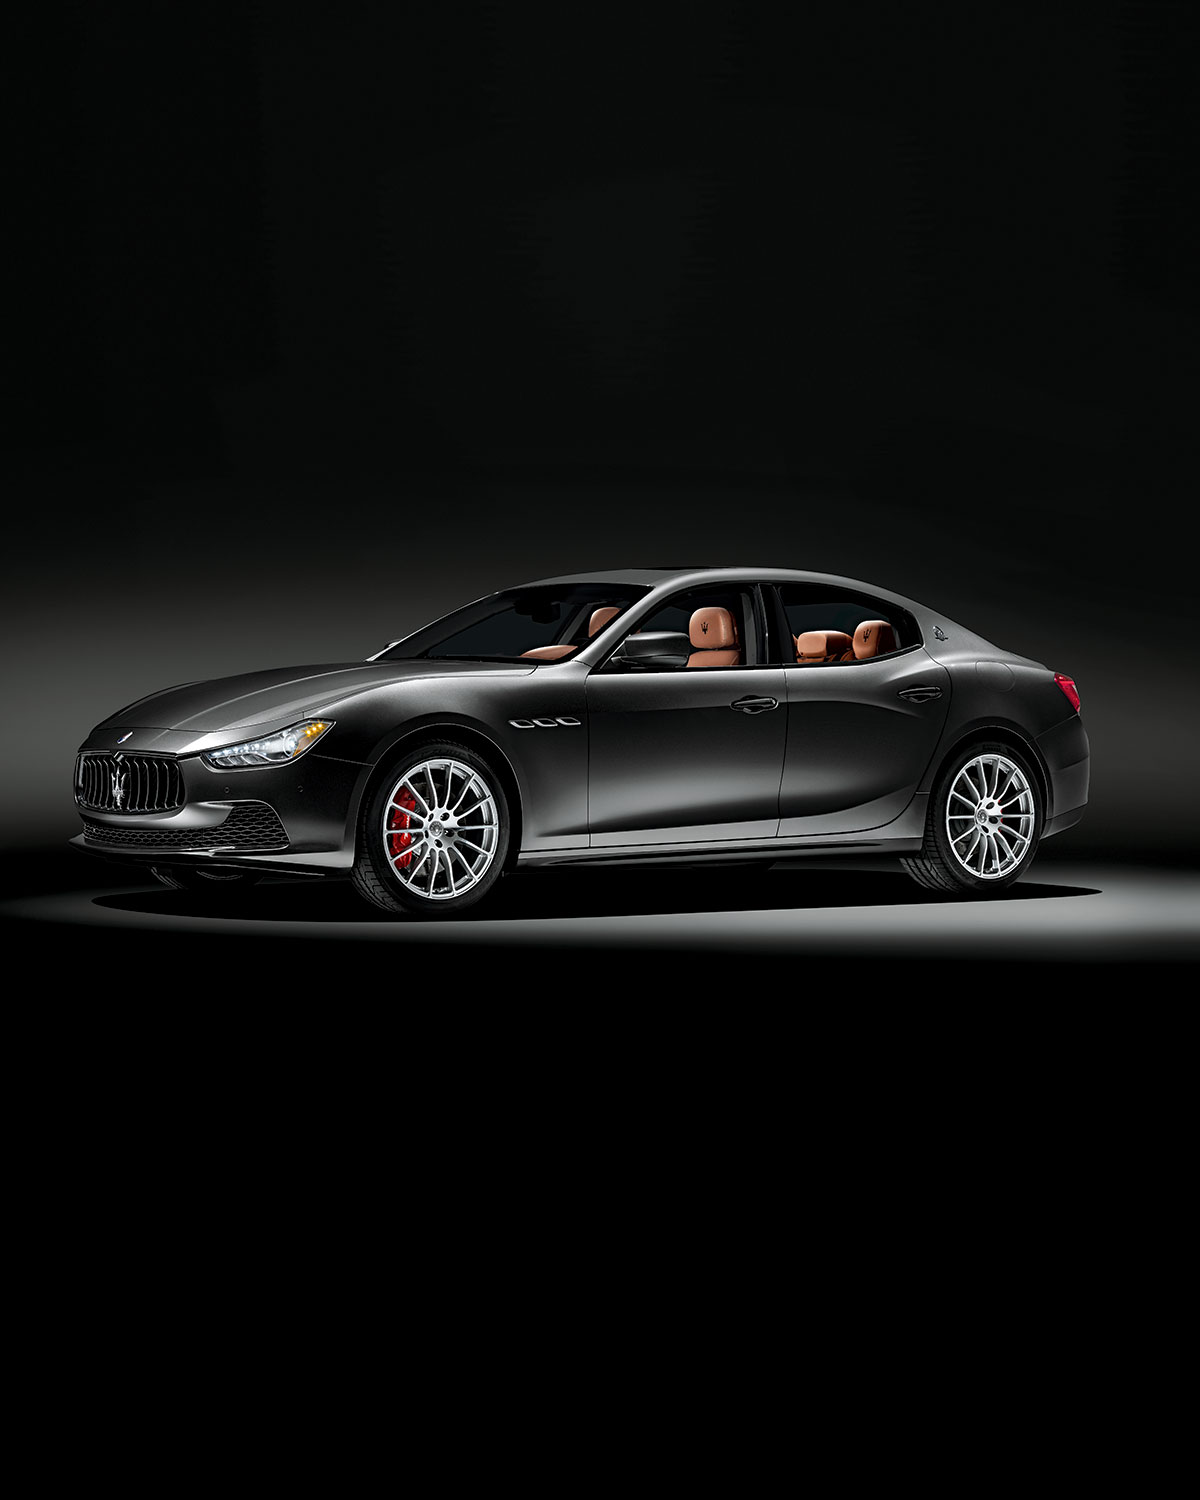 Neiman Marcus To Offer Maserati Ghibli S Q4 In Christmas Book